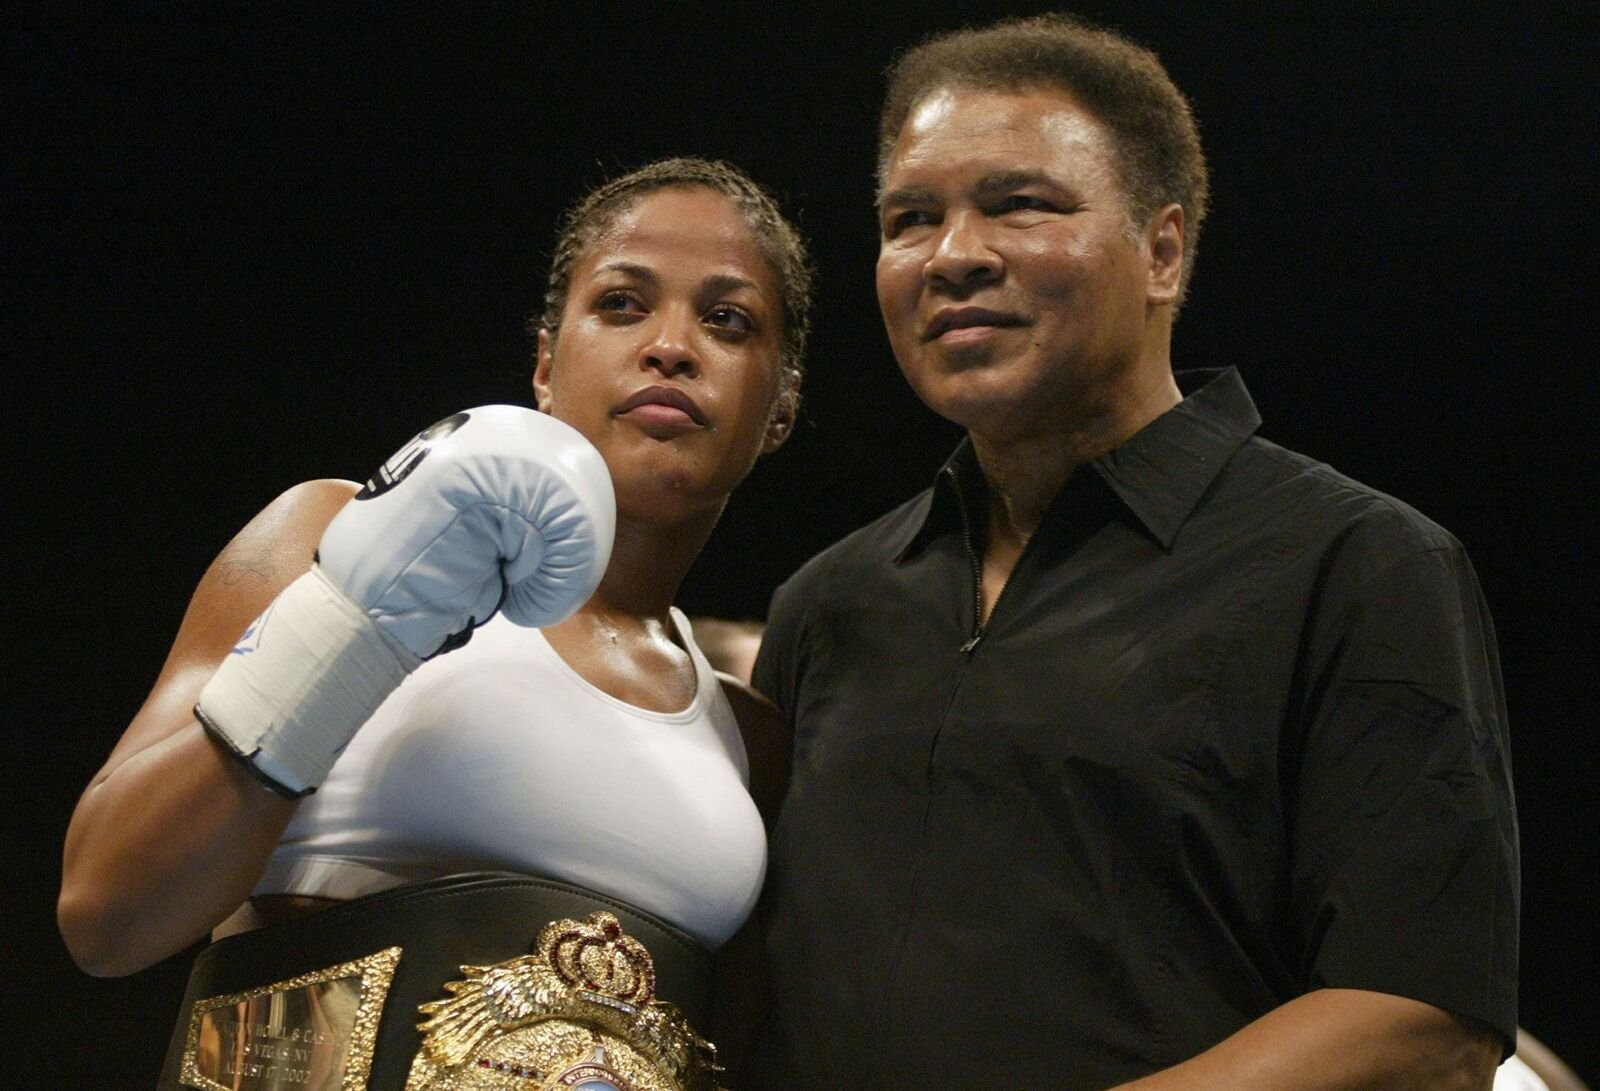 Laila Ali poses with her father, Muhammad Ali, after defeating Suzy Taylor after two rounds at the Aladdin Casino on August 17, 2002. | Photo: Getty Images